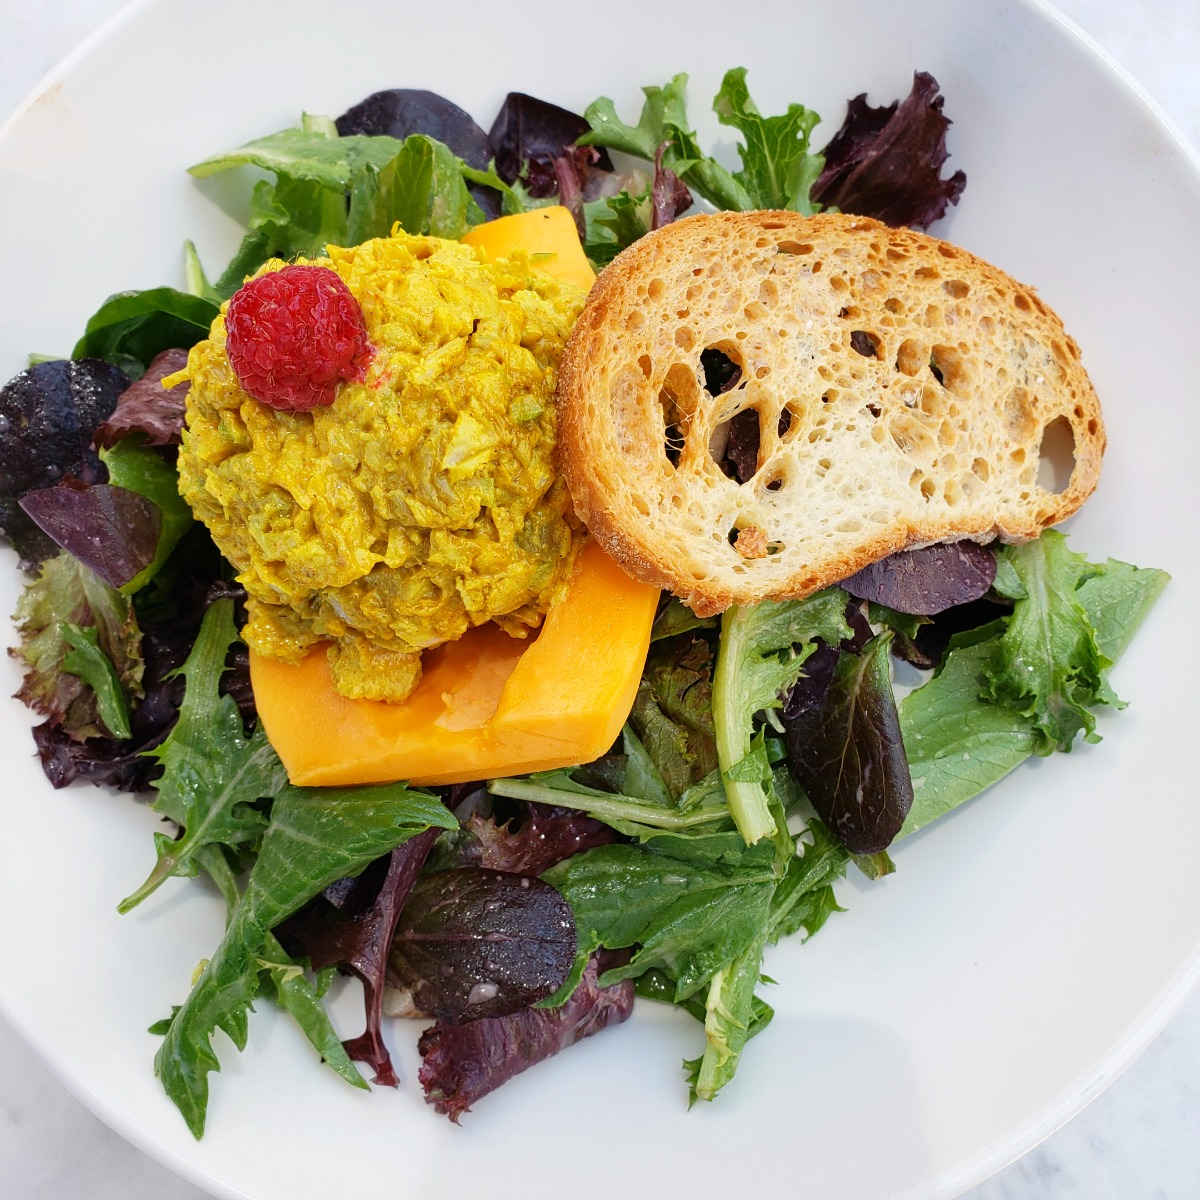 Papaya Curried Chicken Salad atop mixed greens in a white bowl at The Sparrow Cafe in Malibu